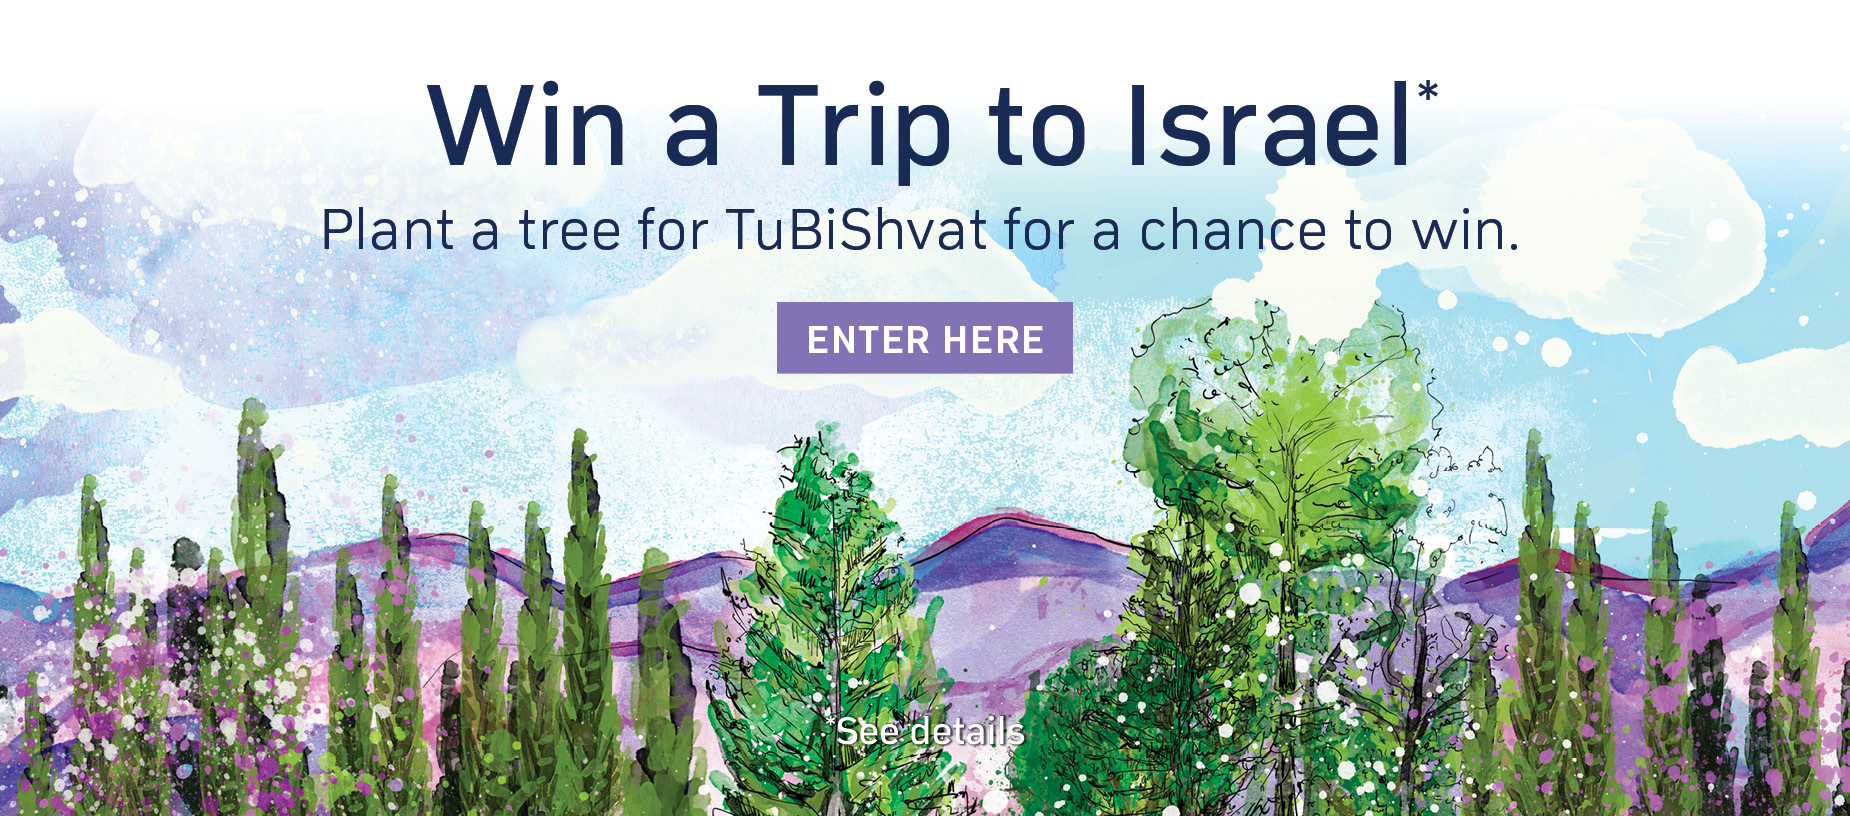 Jewish National Fund, Israel, Trees, Plant, Tu Bishvat